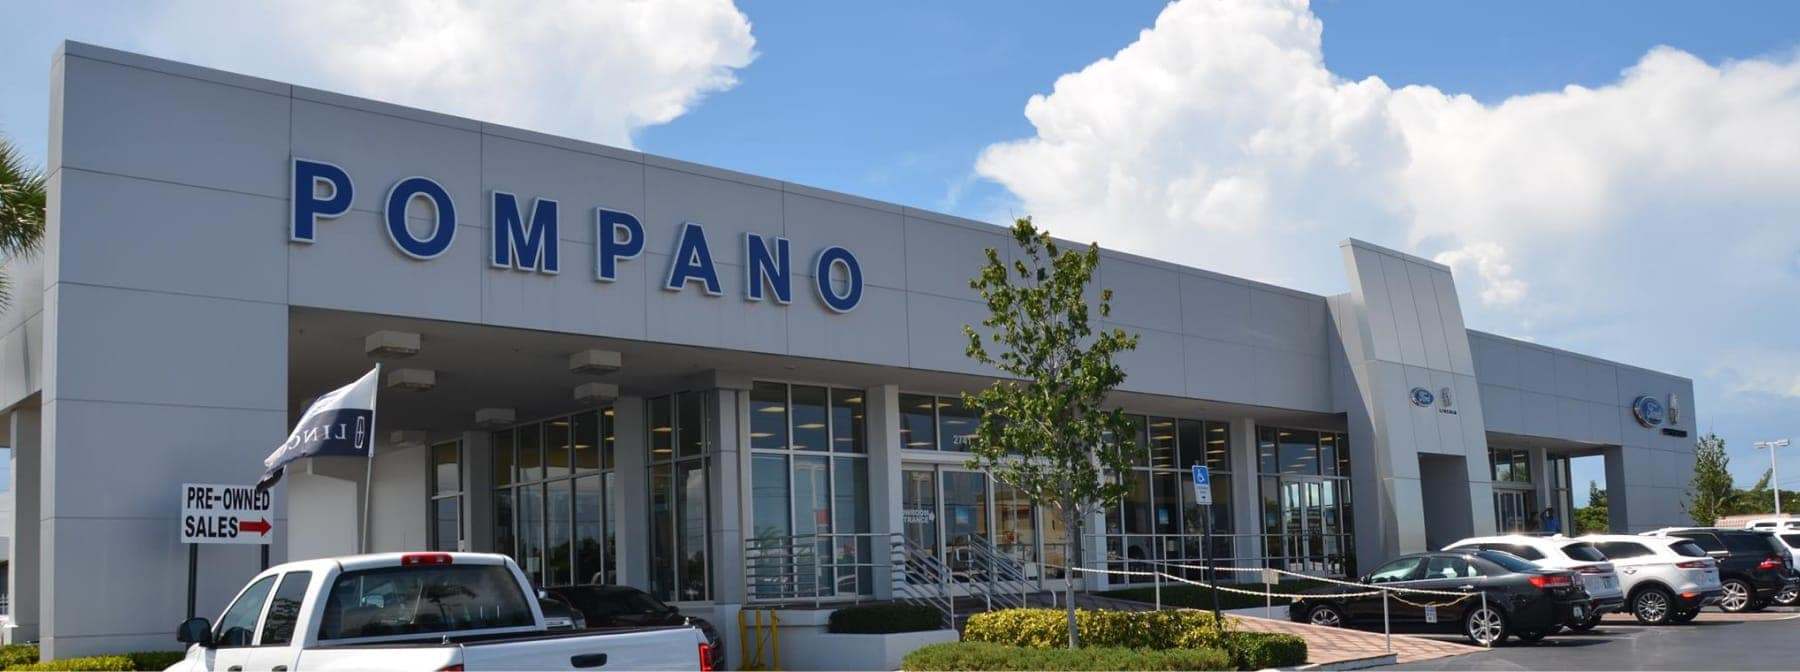 exterior view of Pompano Ford